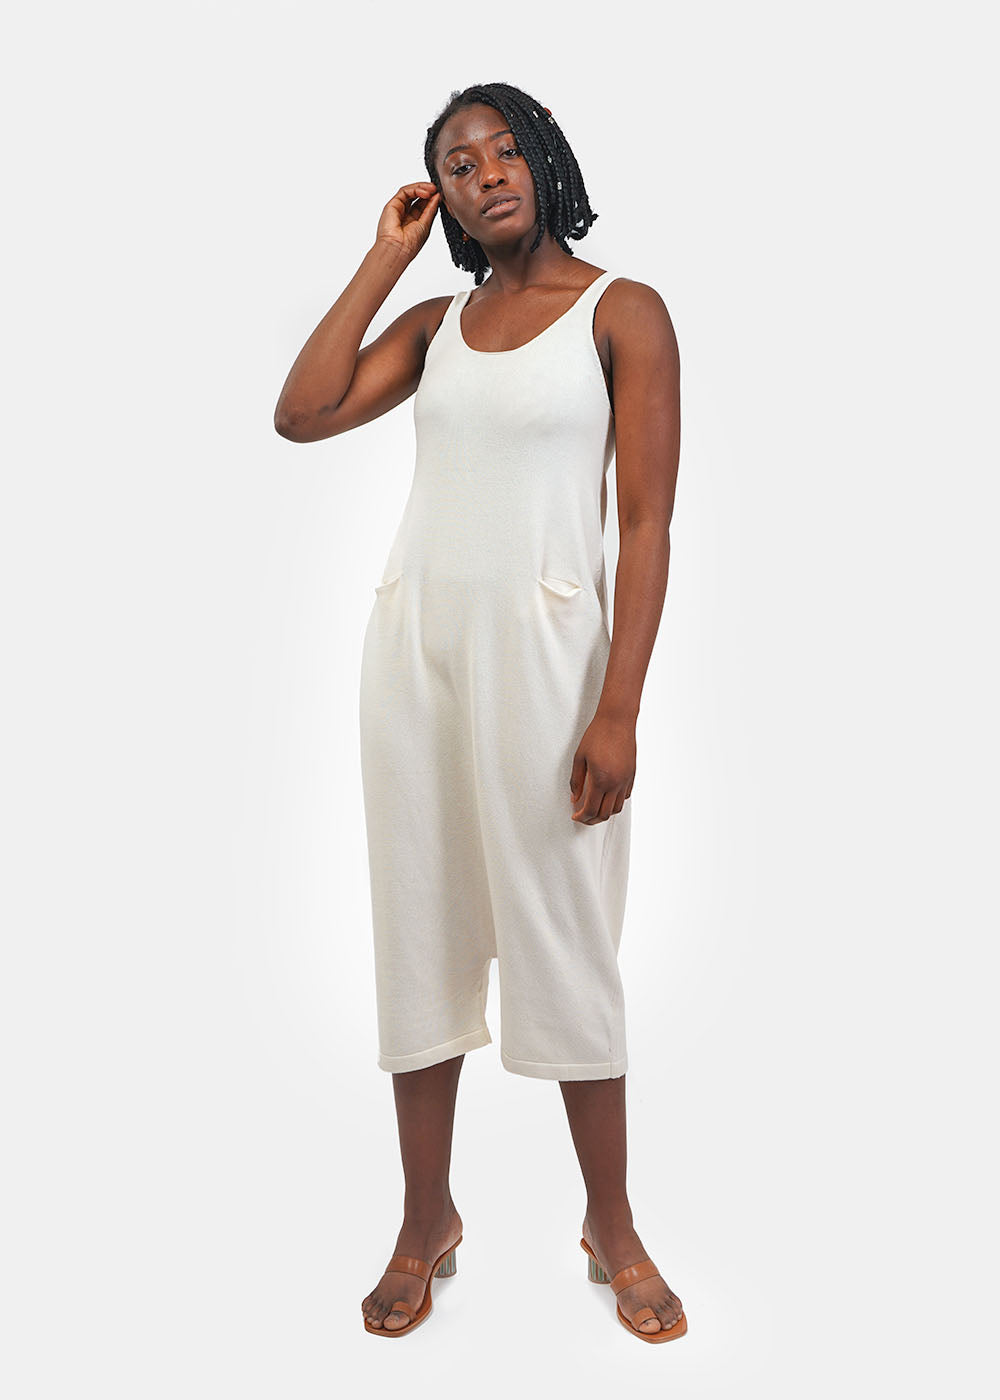 Lauren Manoogian Raw White Playa Suit — Shop sustainable fashion and slow fashion at New Classics Studios